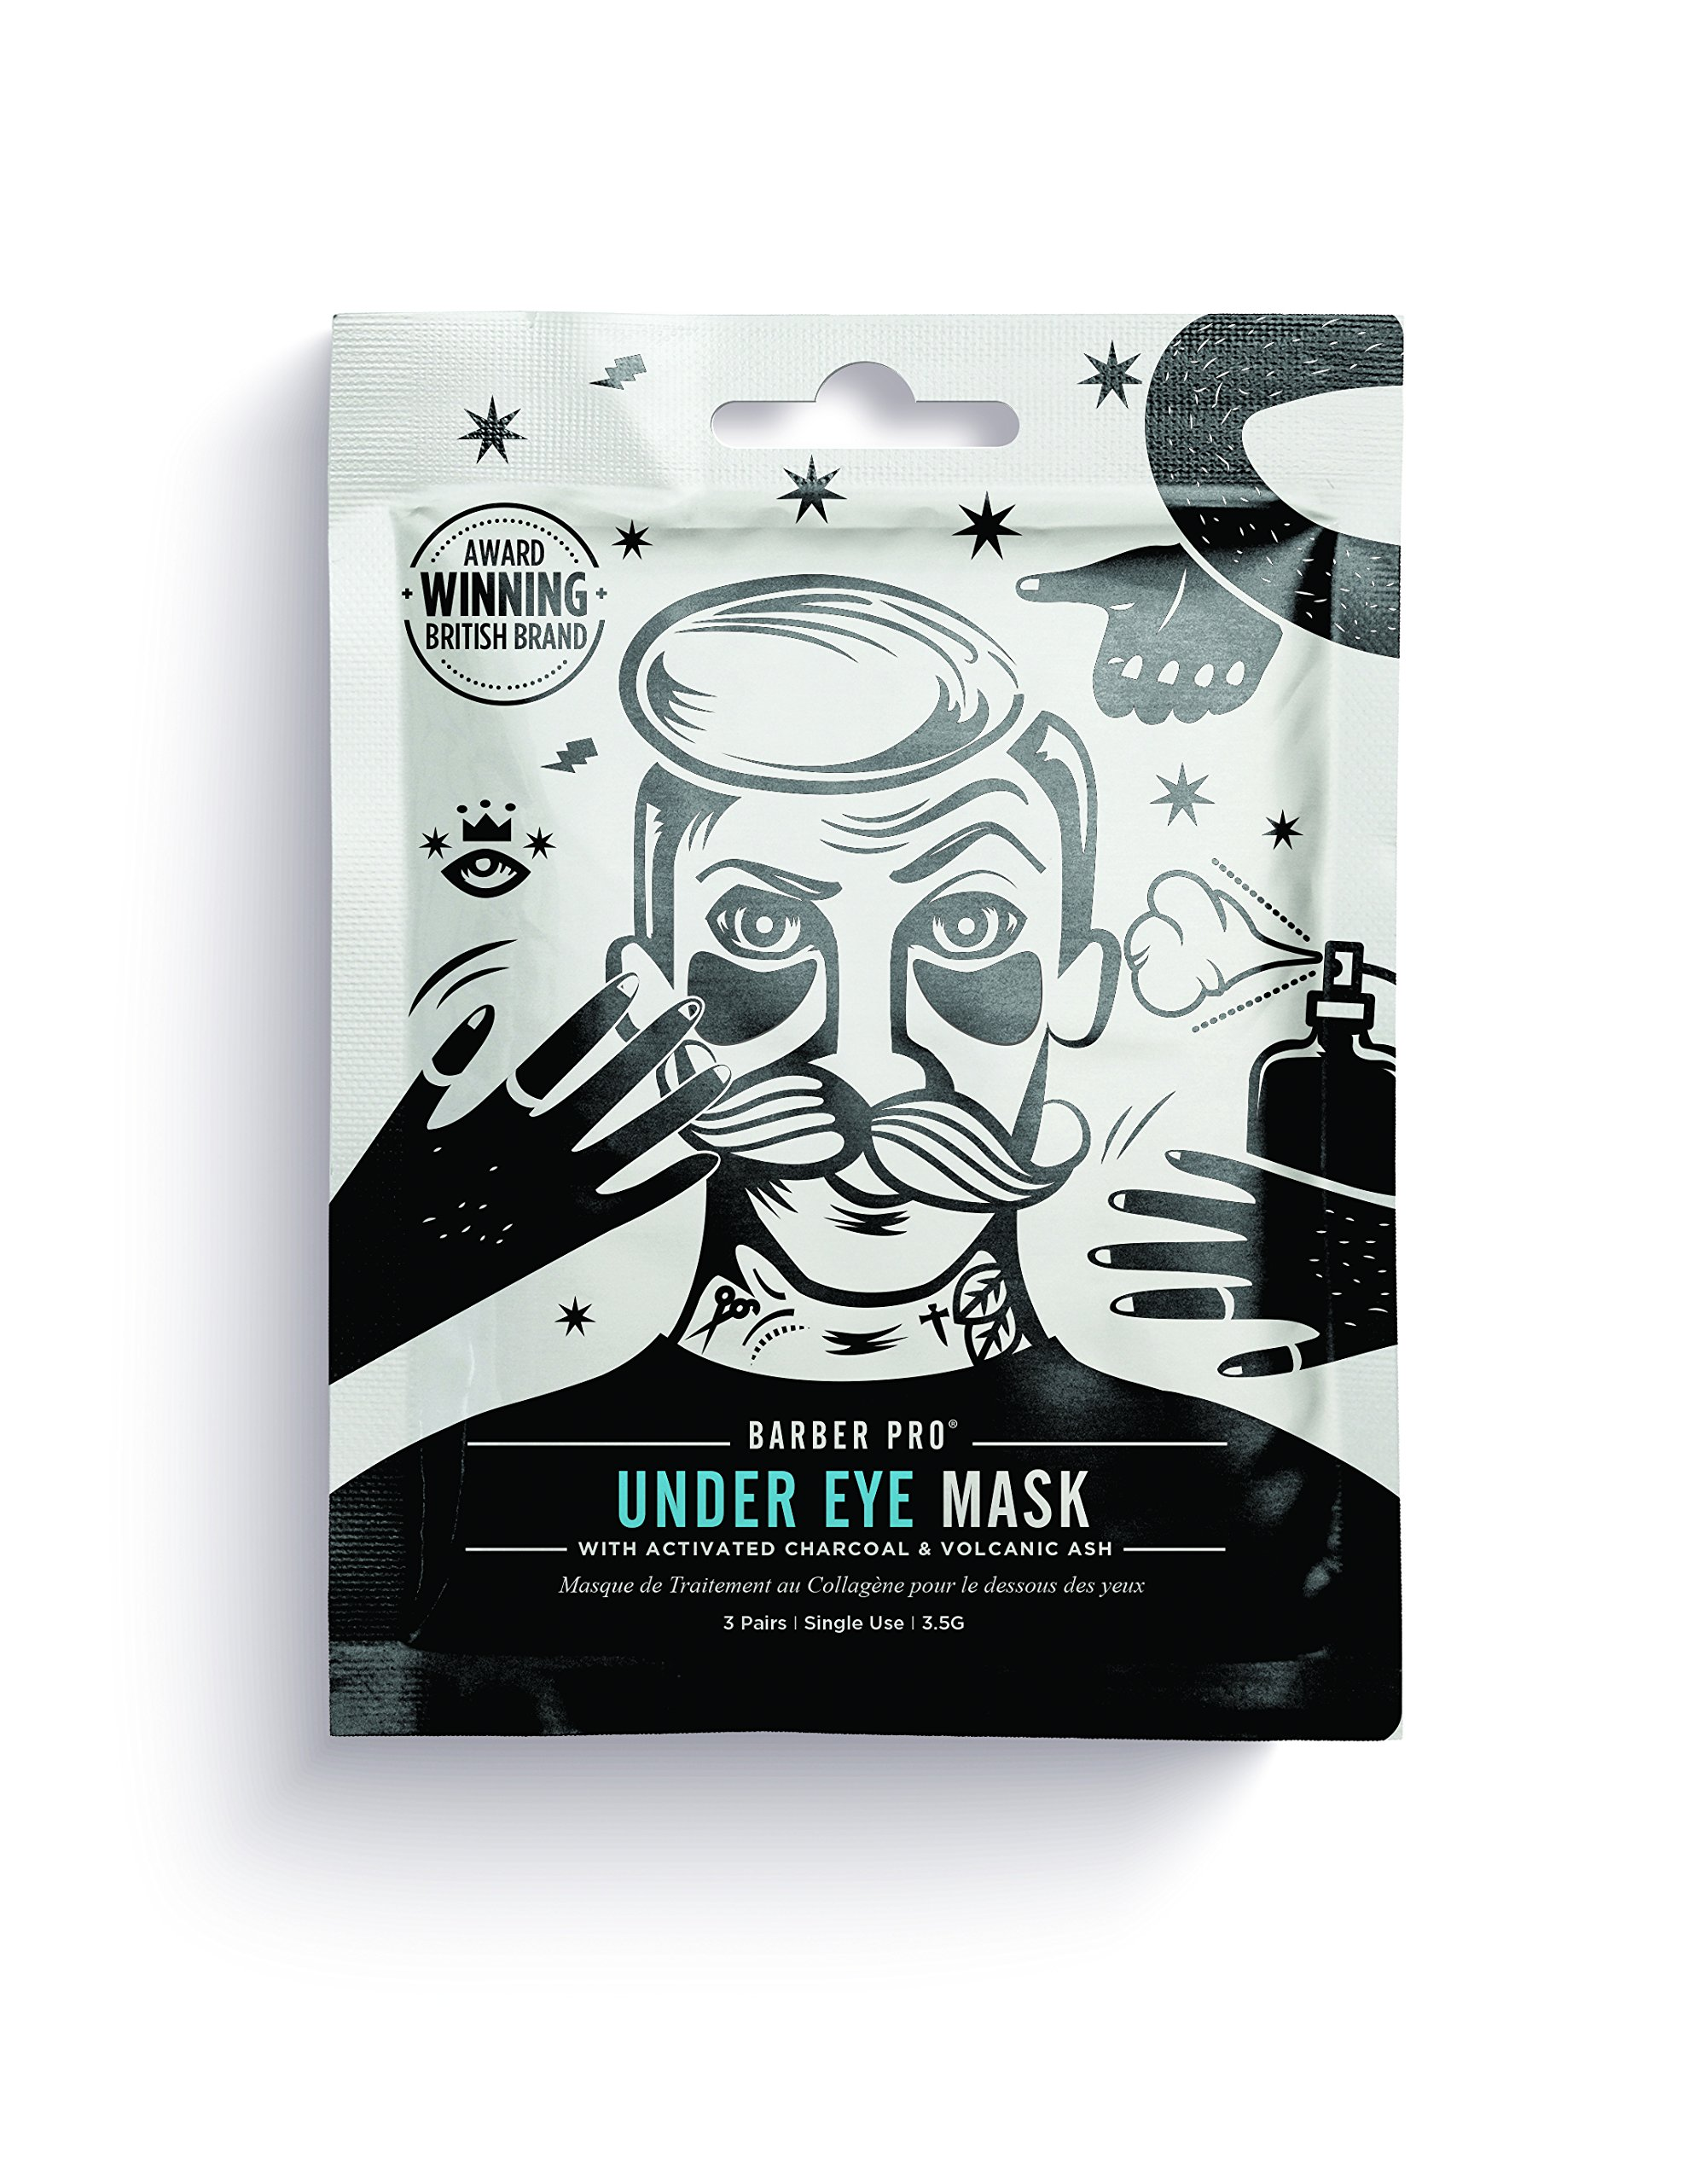 BARBER PRO UNDER EYE MASK for men with activated charcoal & volcanic ash (3 Applications